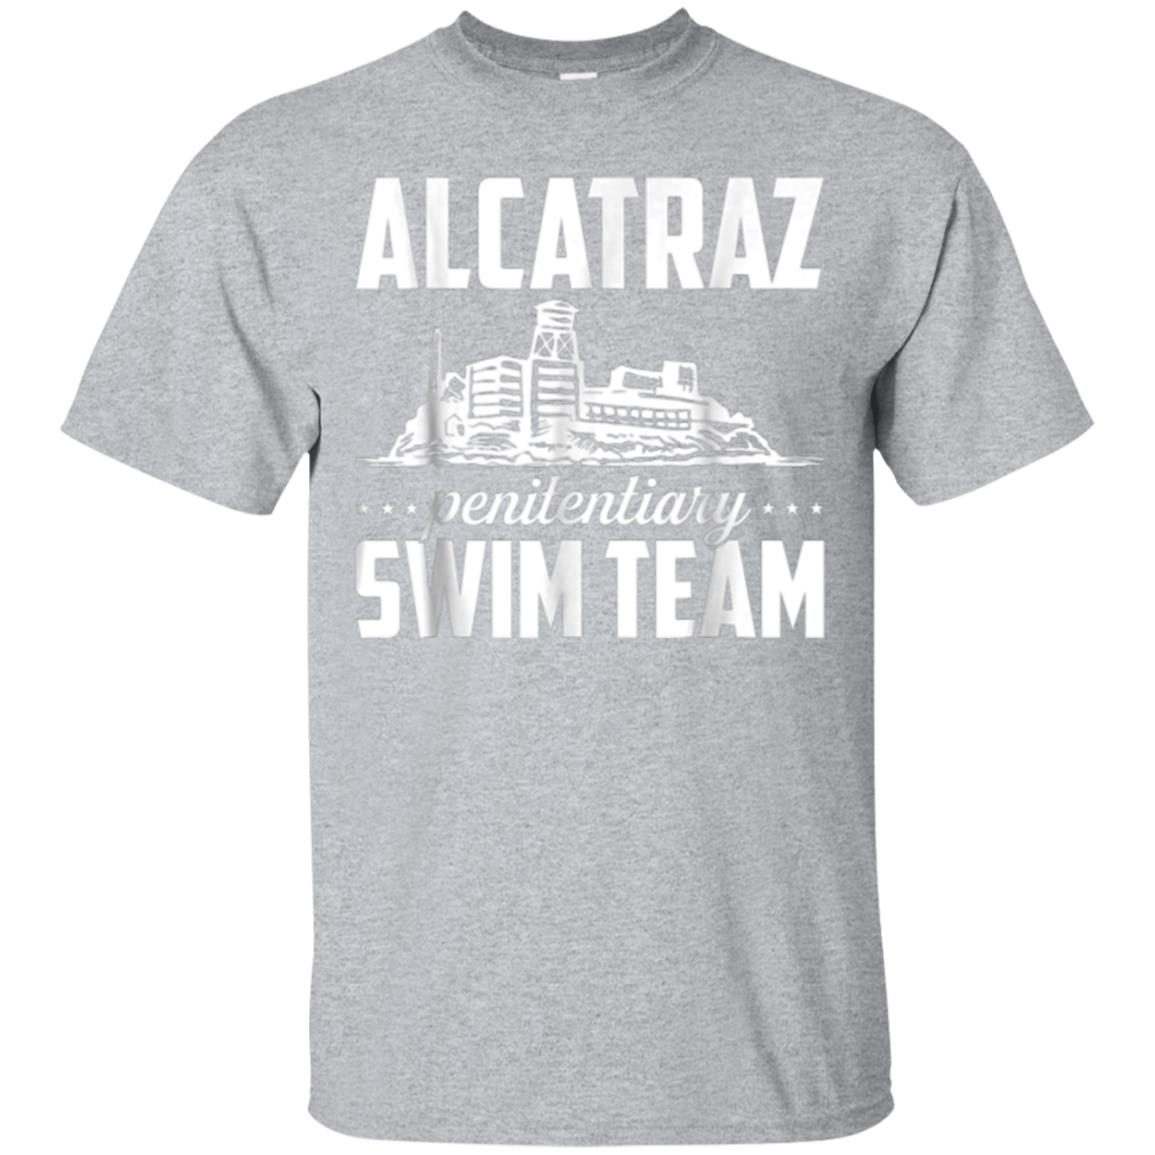 Alcatraz Penitentiary Swim Team - San Francisco T-Shirt 99promocode